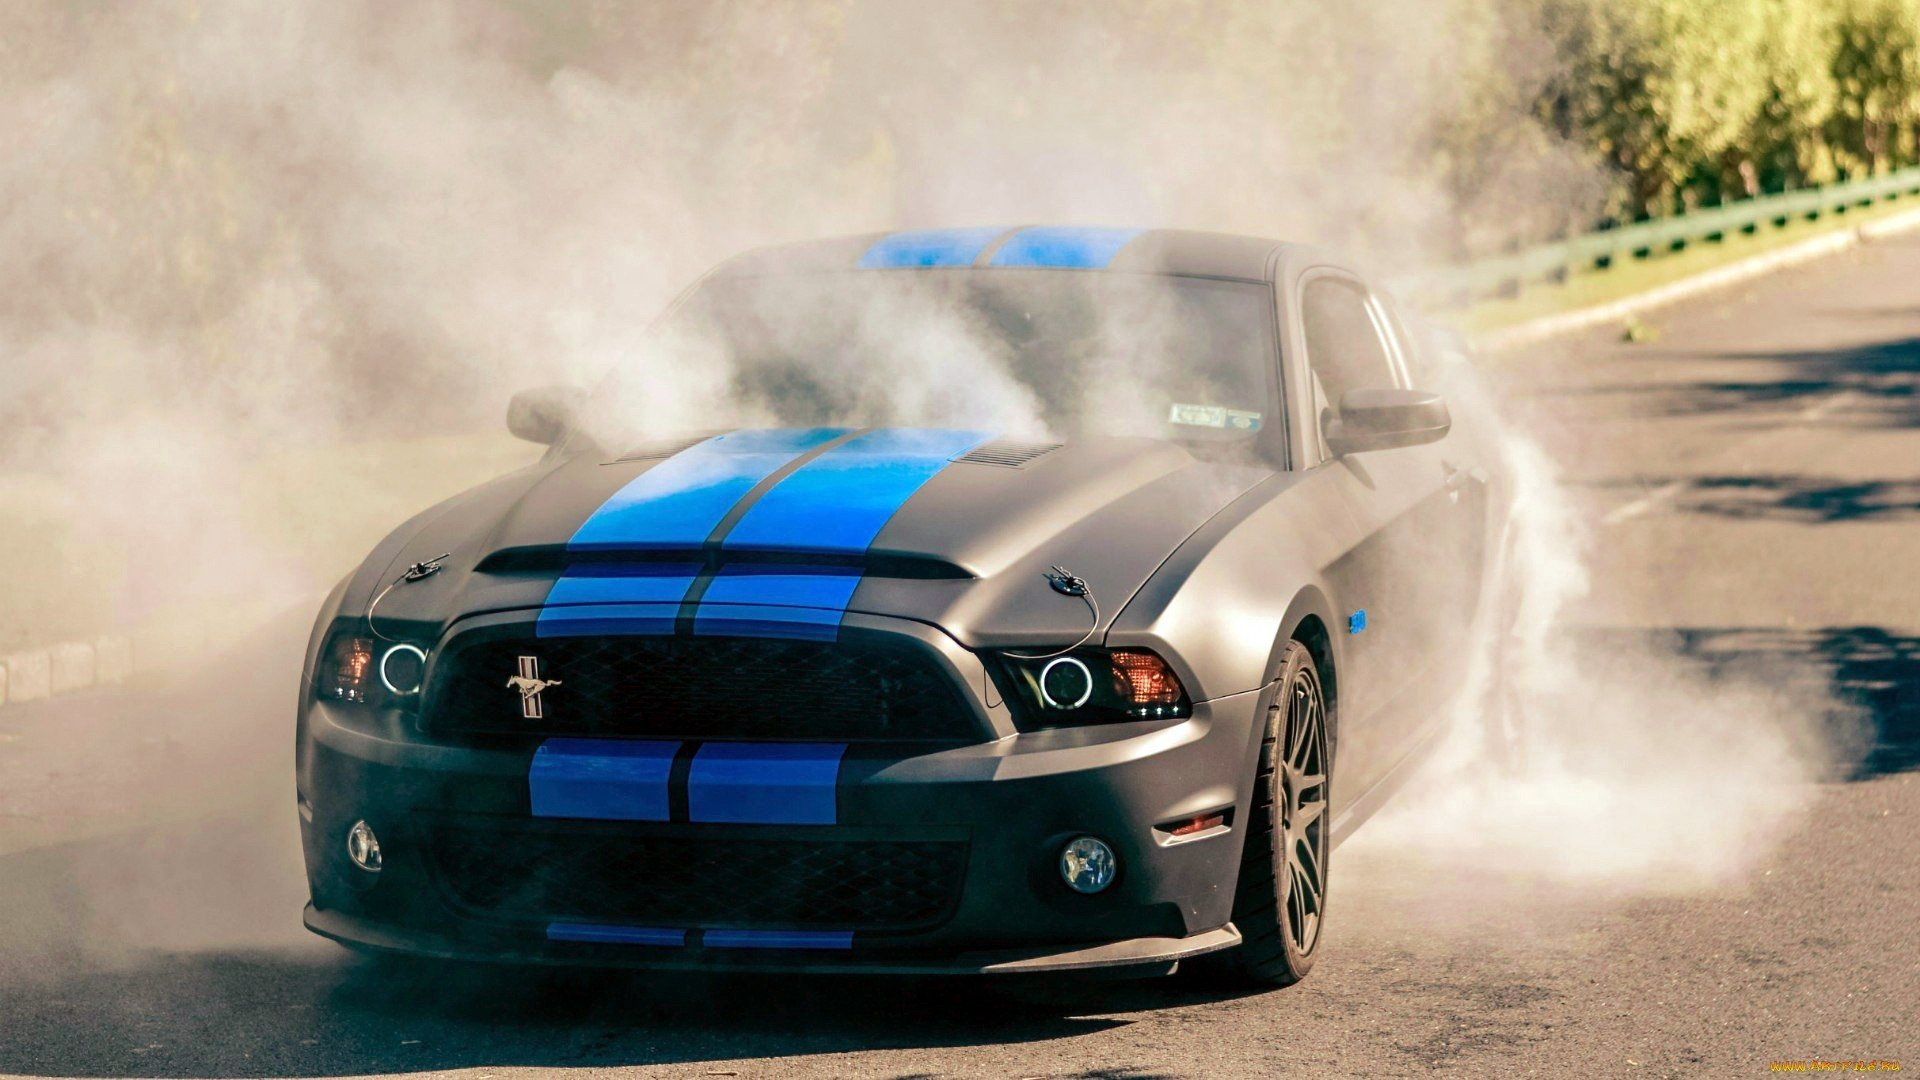 Ford ford mustang burnout muscle car shelby gt500 shelby gt 500 gt 500 supersnake mustang gt wallpaper 1920x1080 238769 wallpaperup